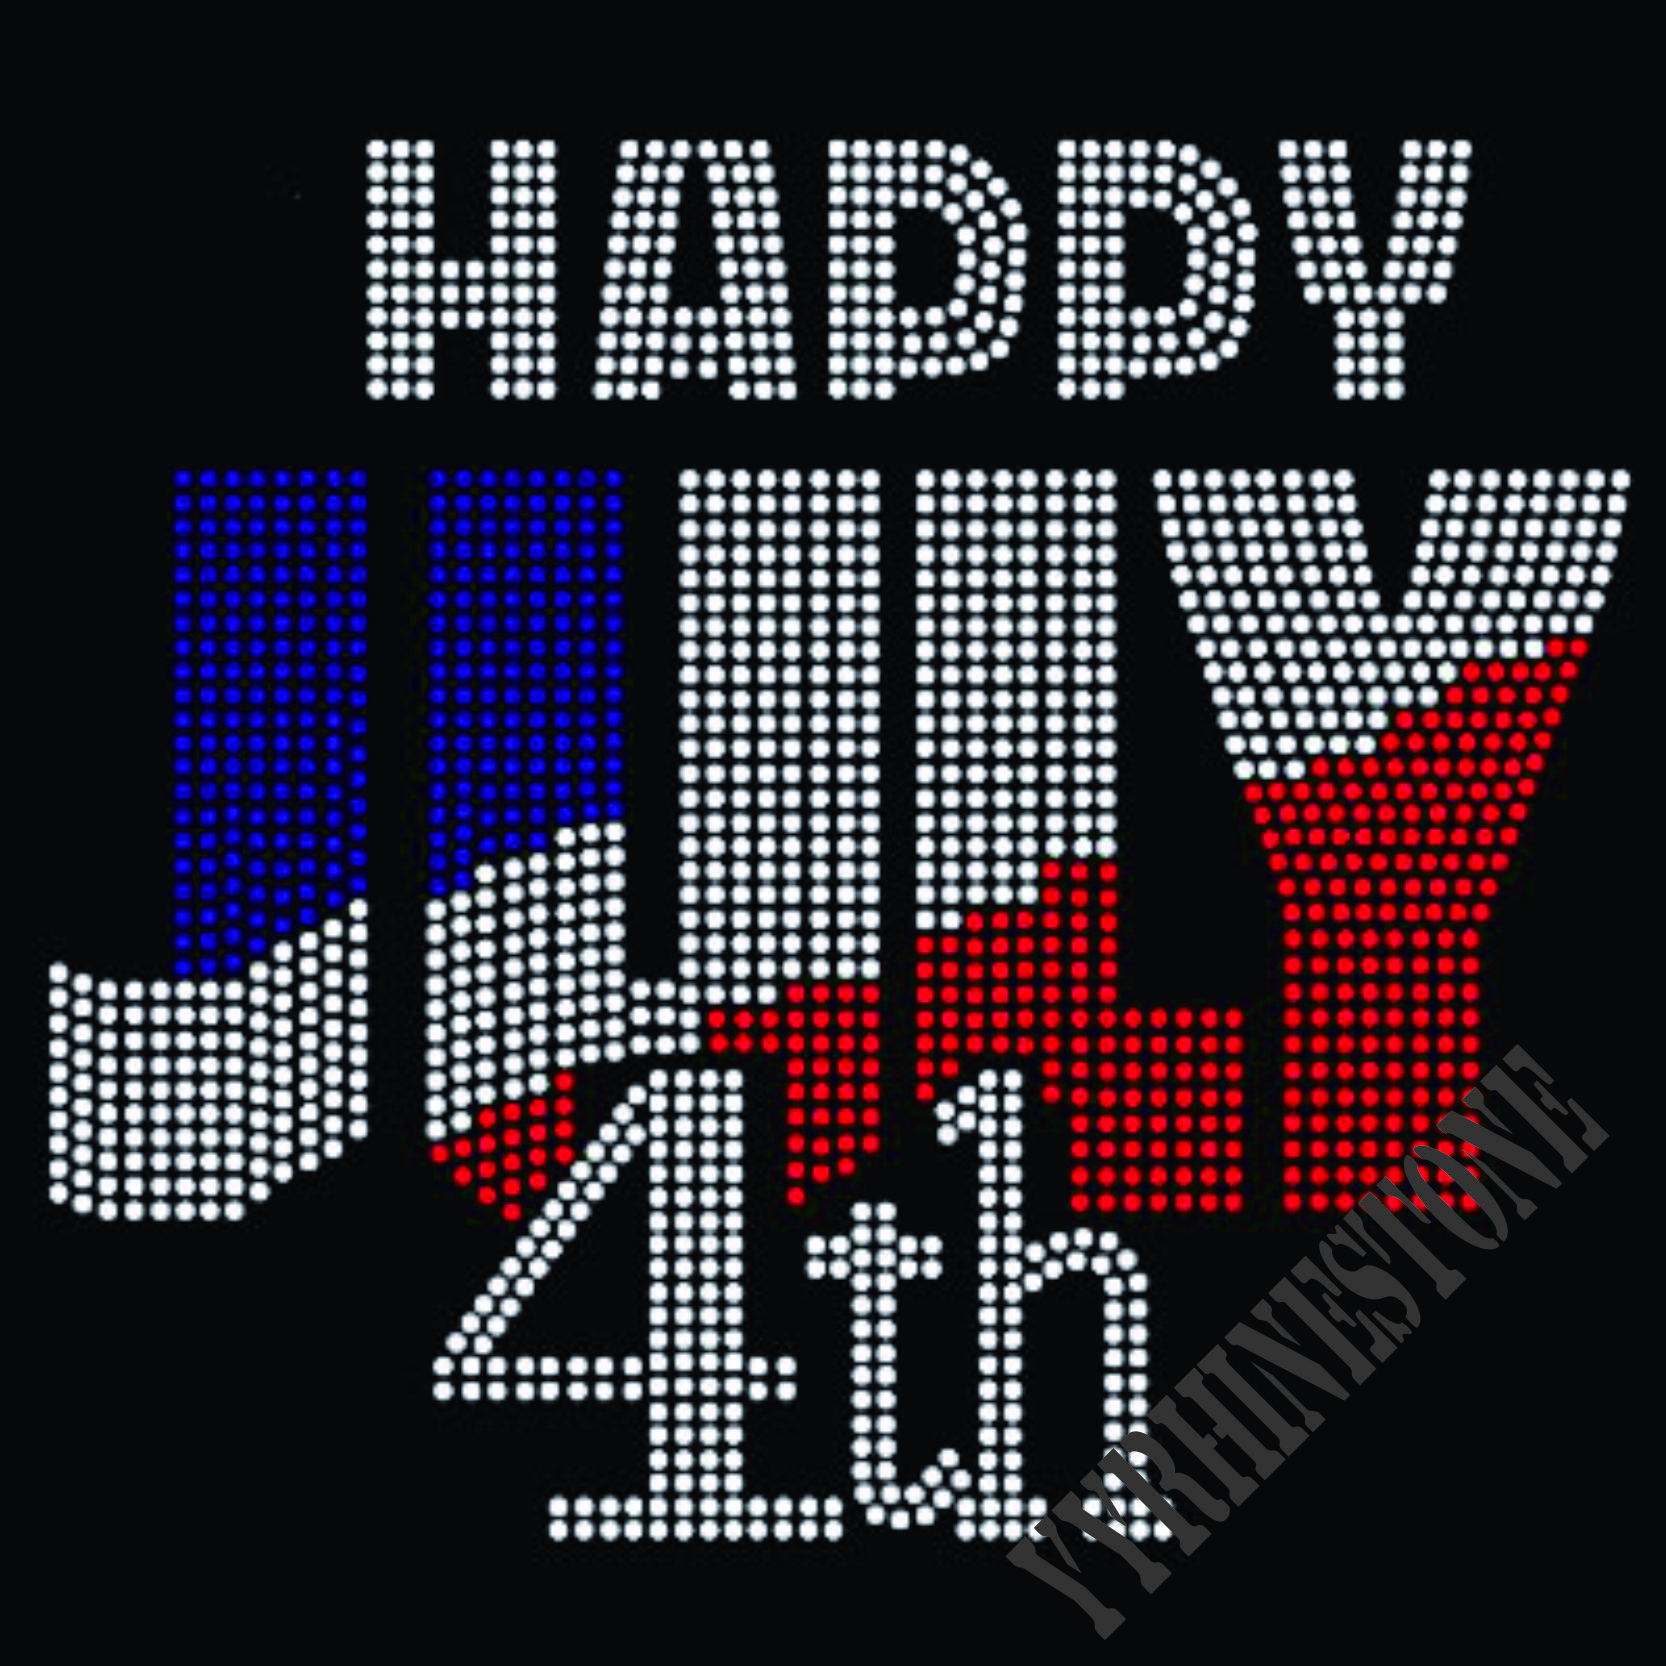 HAPPY JULY 4TH hotfix rhinestone transfers